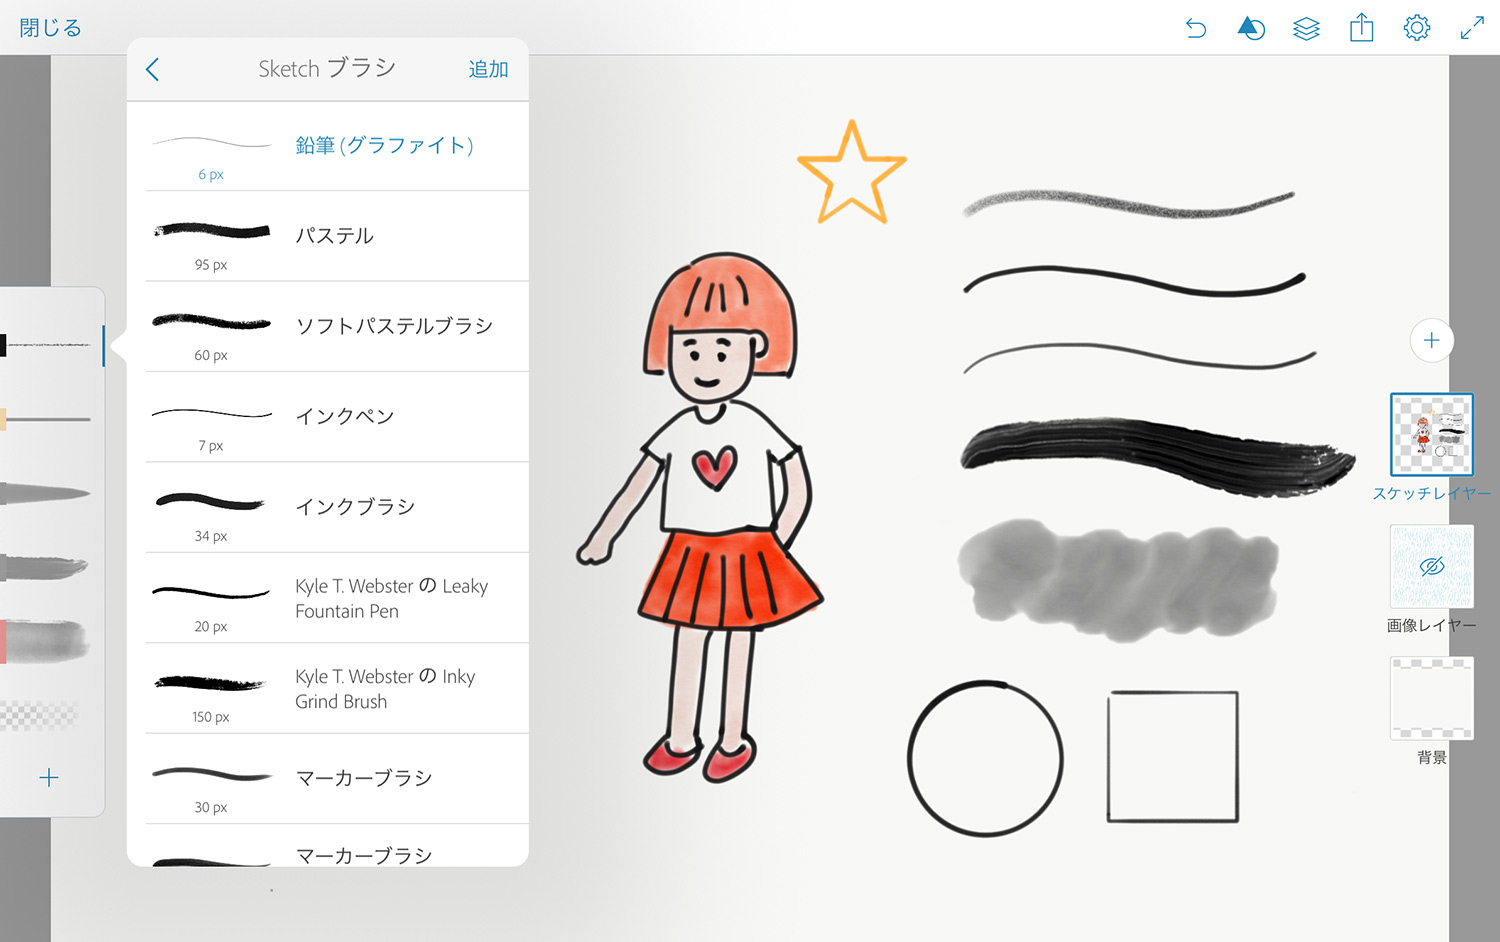 Adobe Photoshop Sketchのサンプル画像